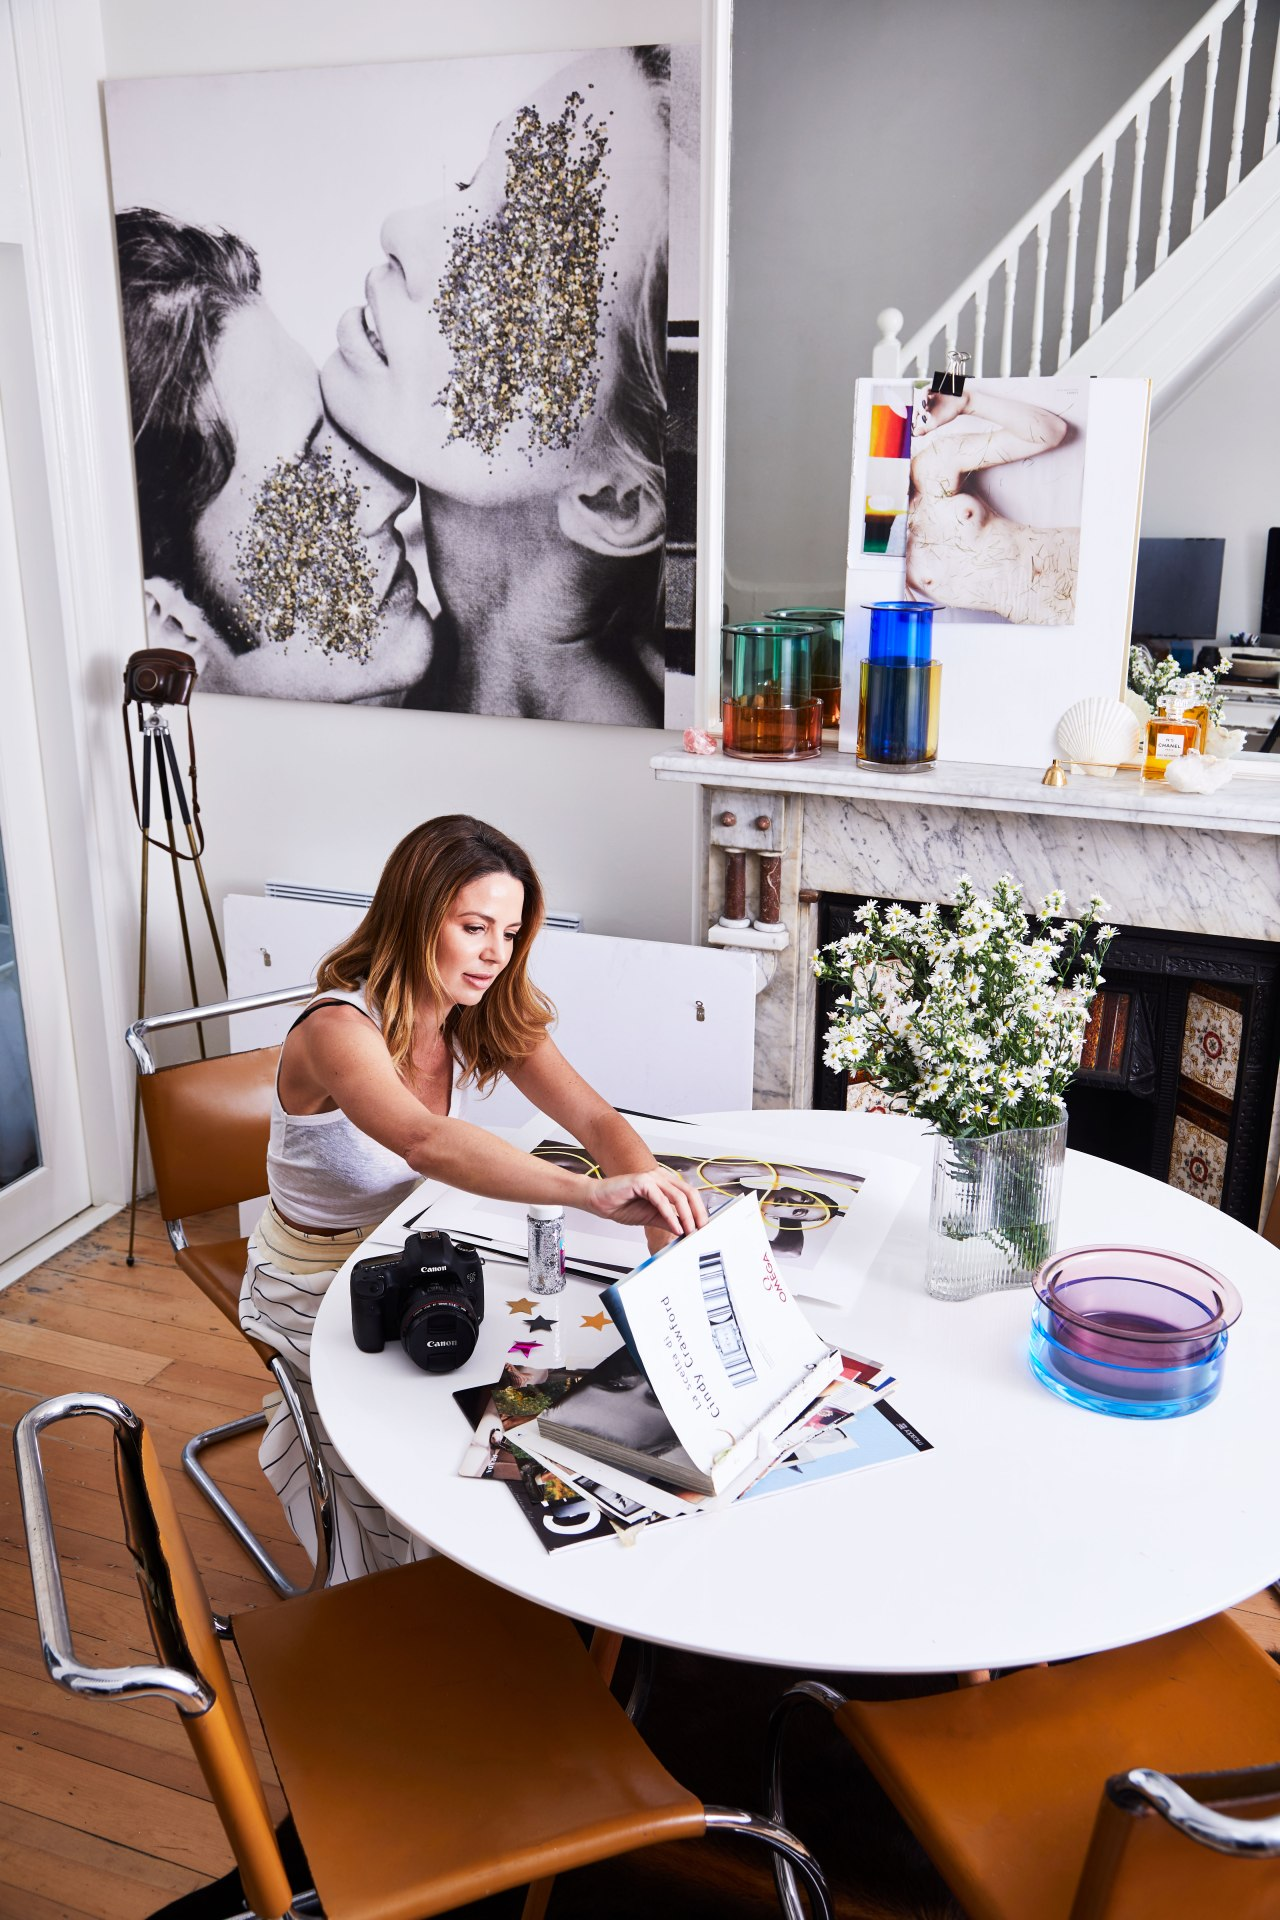 Hour tour: artist Dina Broadhurst's light-filled Sydney terrace